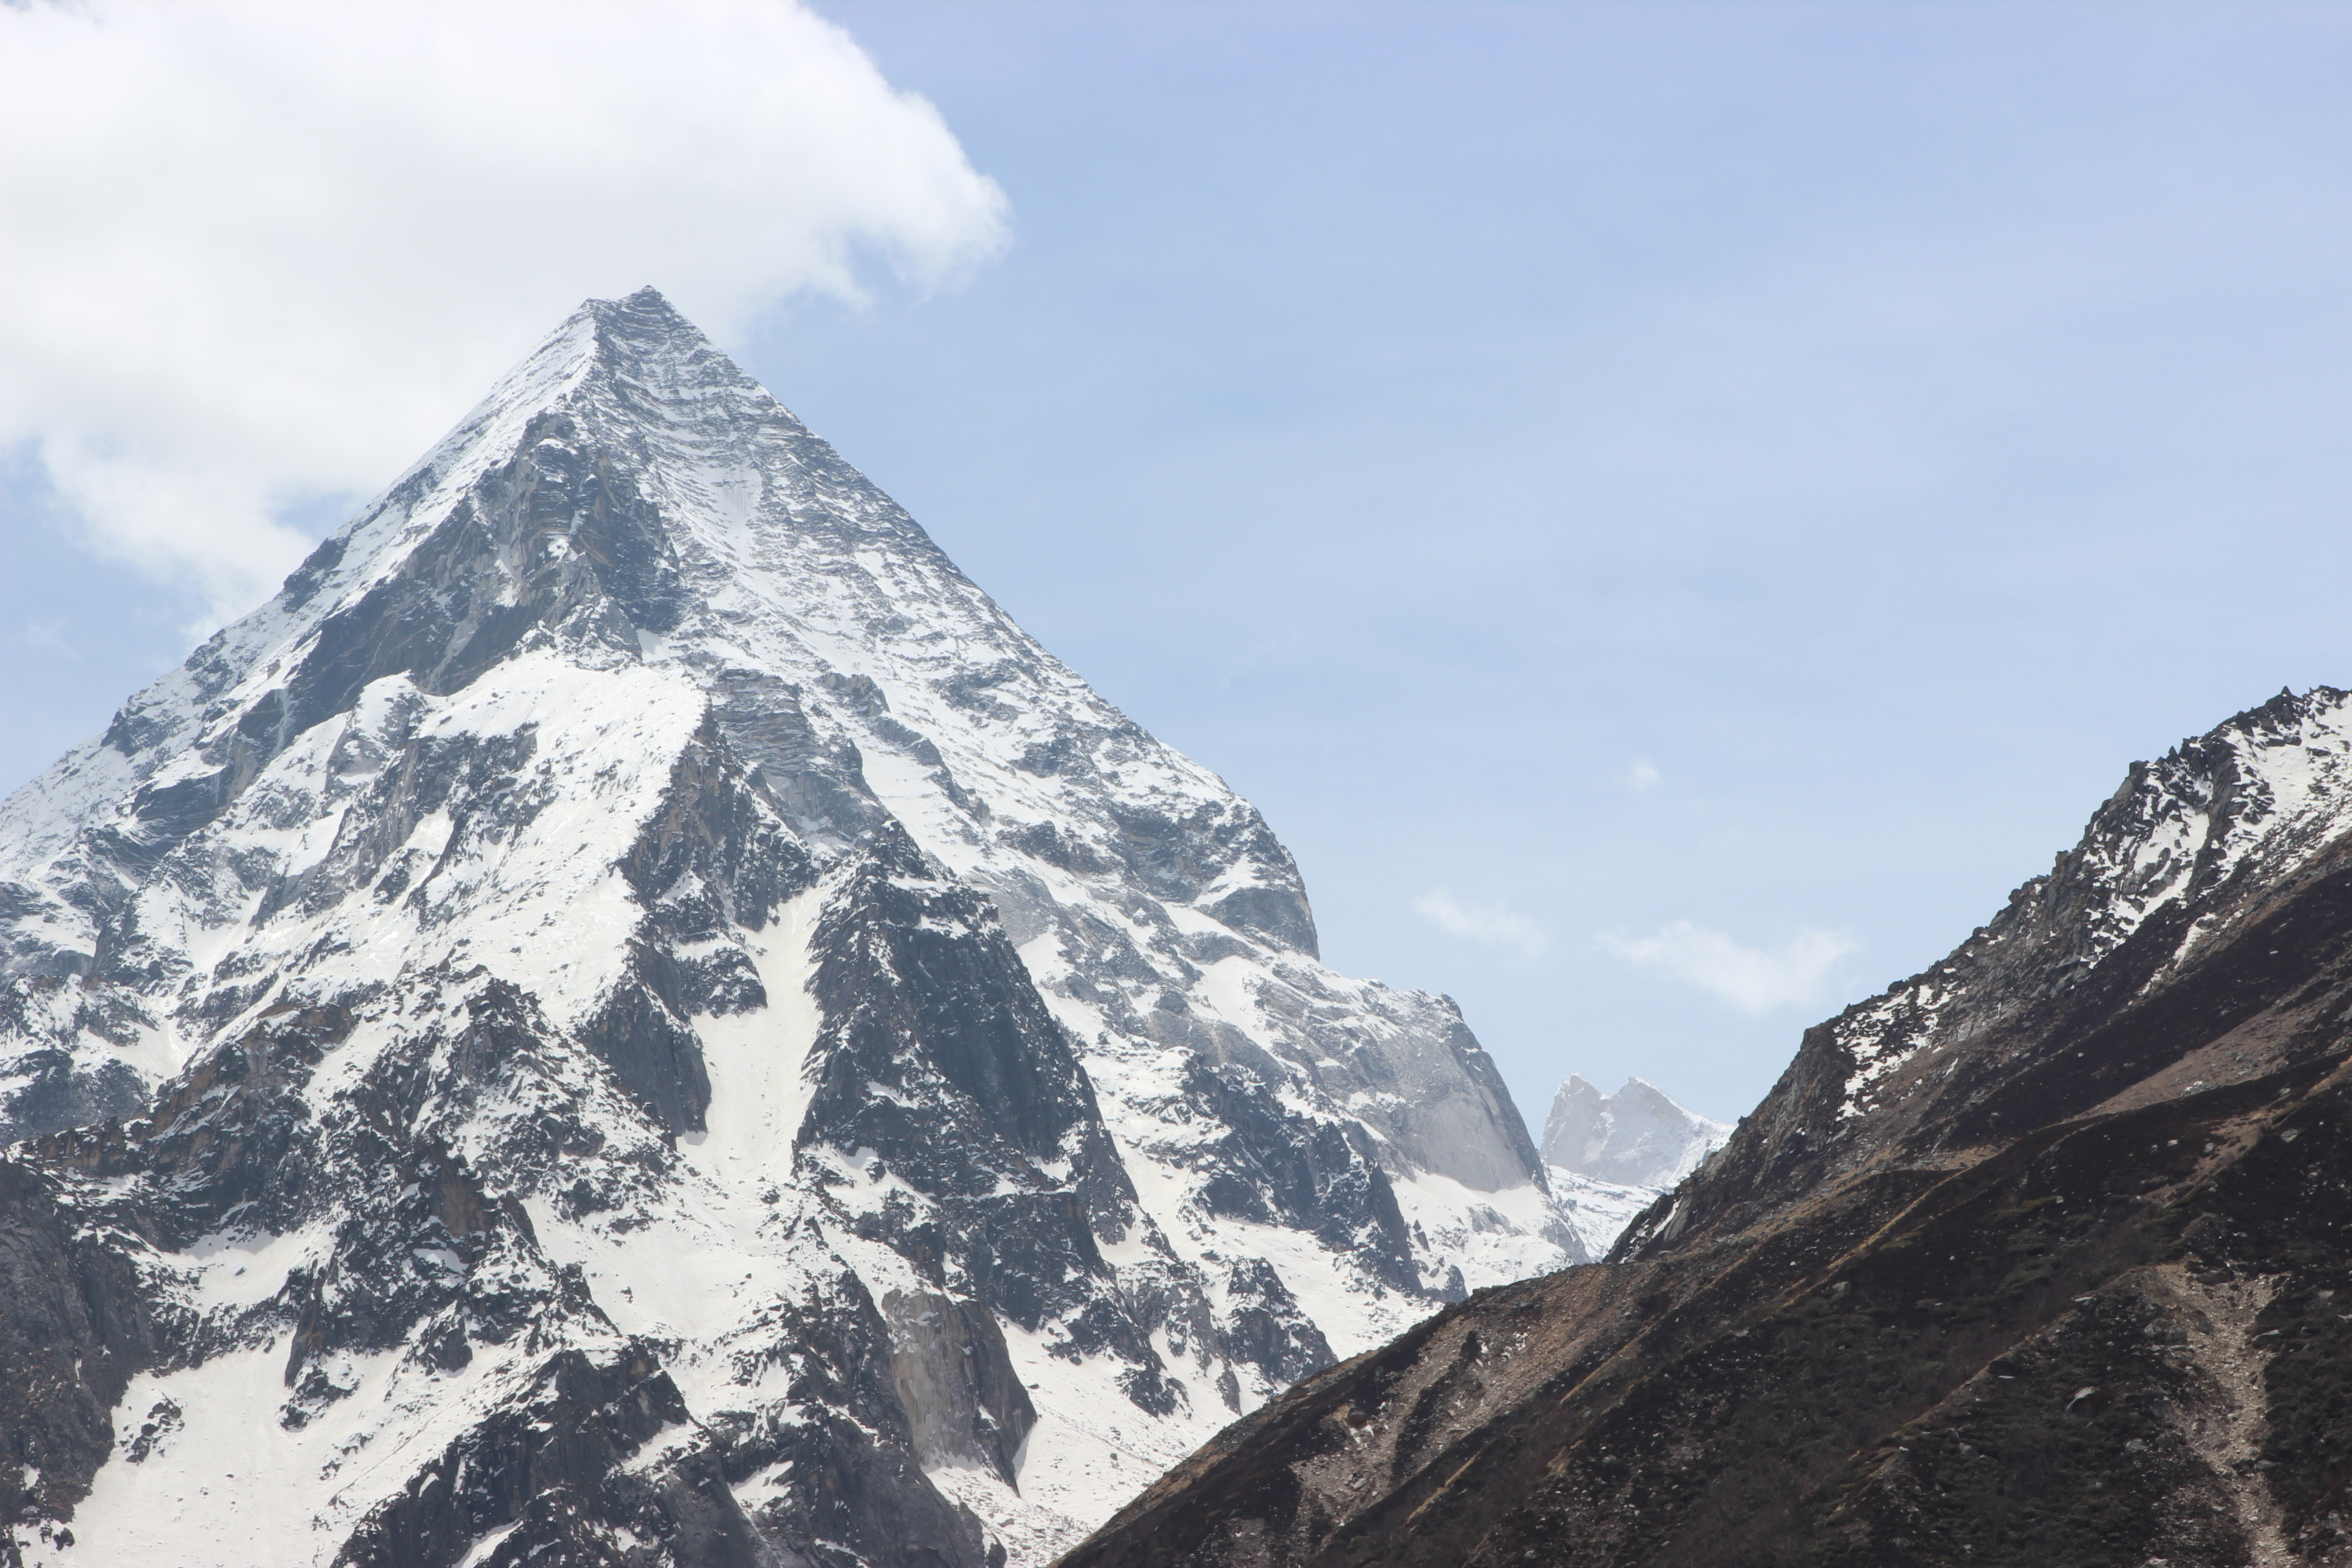 Meru is the tiny little jagged peak in the bottom right corner sandwiched between the nearer ones. Photo: Trixie Pacis